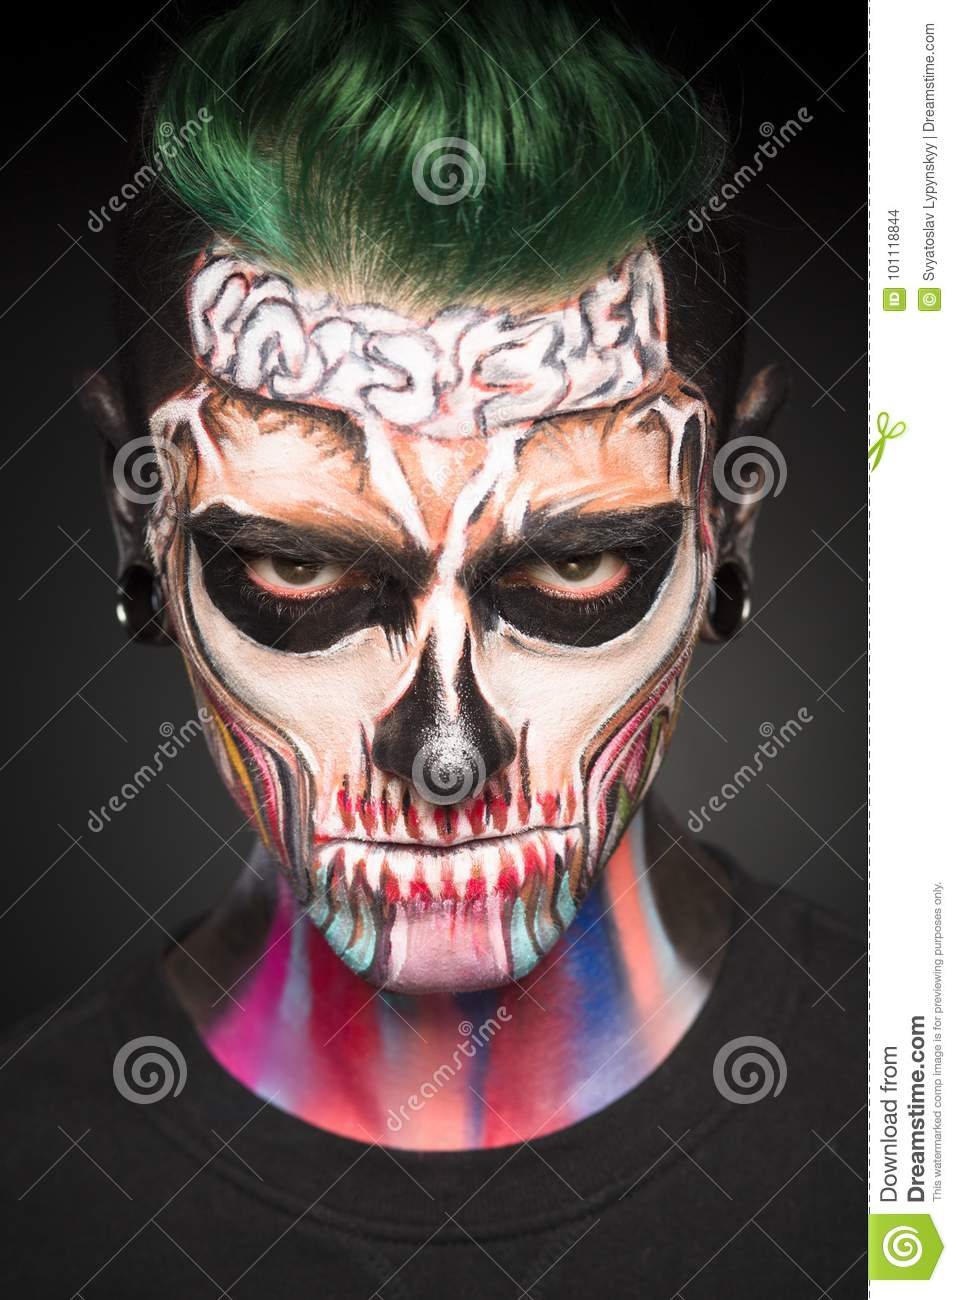 Halloween Make Up Men.View Of Man With Green Hair And Halloween Makeup Stock